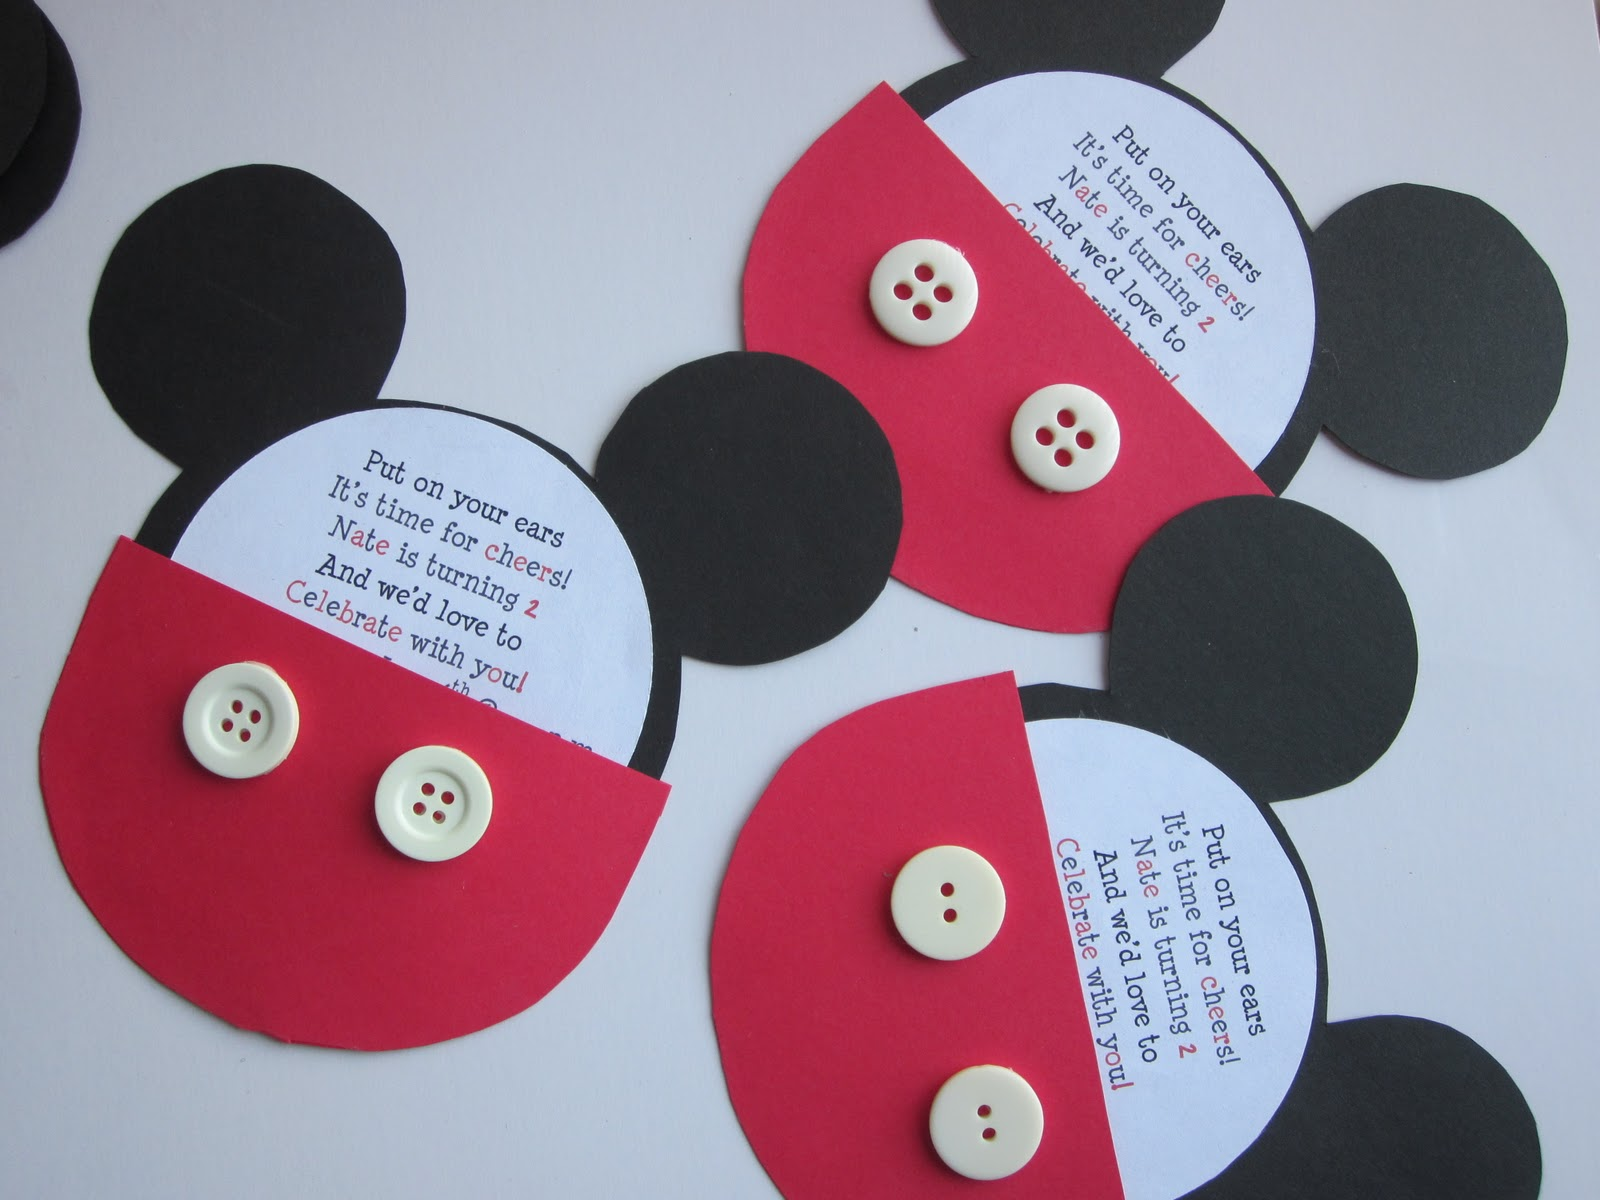 Embellishing Life Mickey birthday invitations – Homemade Birthday Invitation Ideas